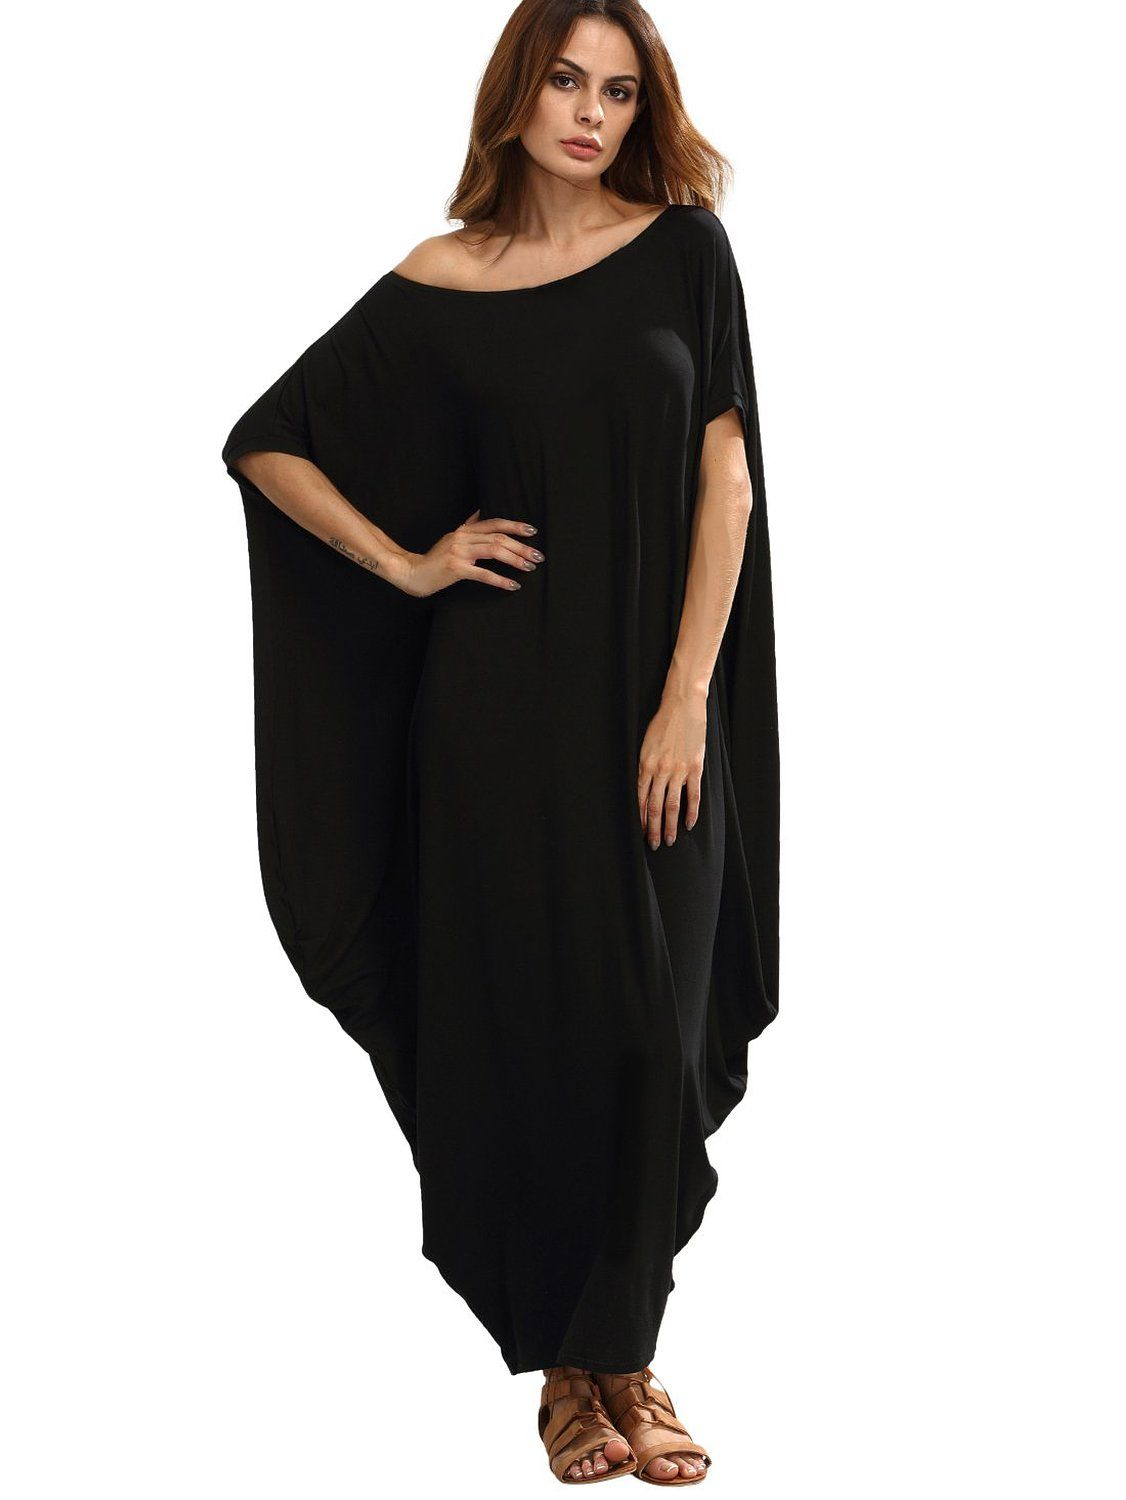 Verdusa womenus boho one off shoulder caftan sleeve harem maxi dress